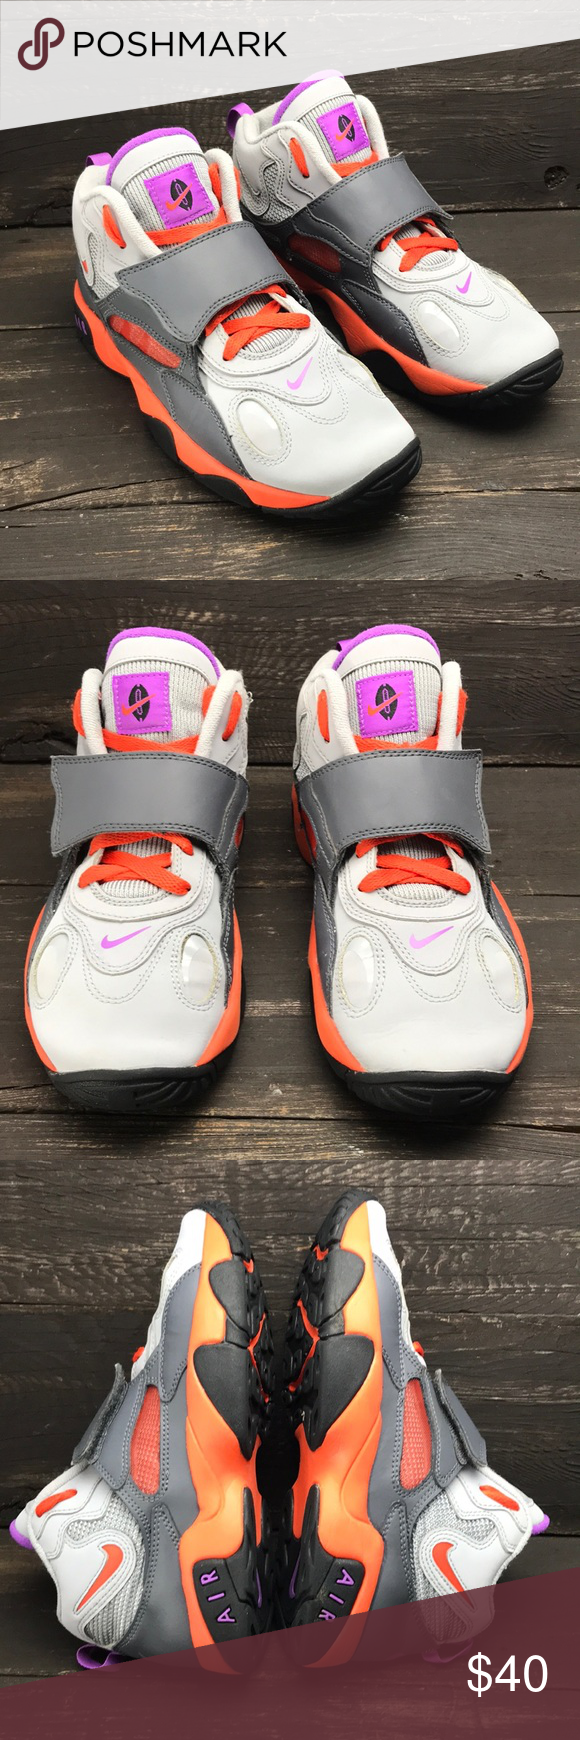 Nike Air Max Speed Turf GS Size 7Y